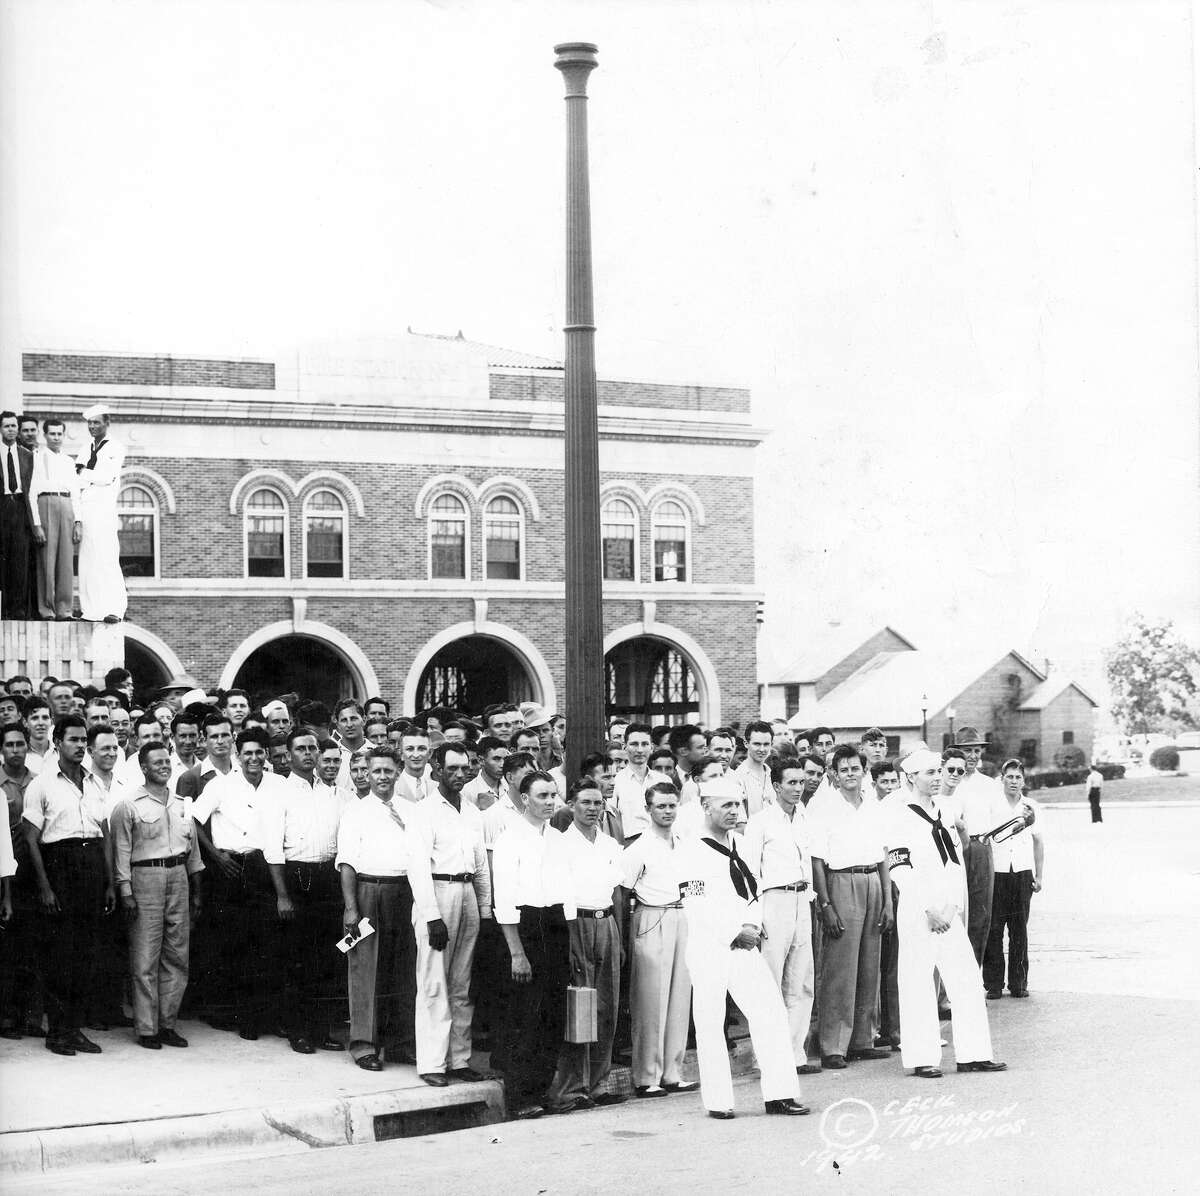 The Houston Volunteers on Memorial Day, May 30, 1942, outside the Music Hall/Sam Houston Coliseum. Fire Station No. 2 can be seen in the background.